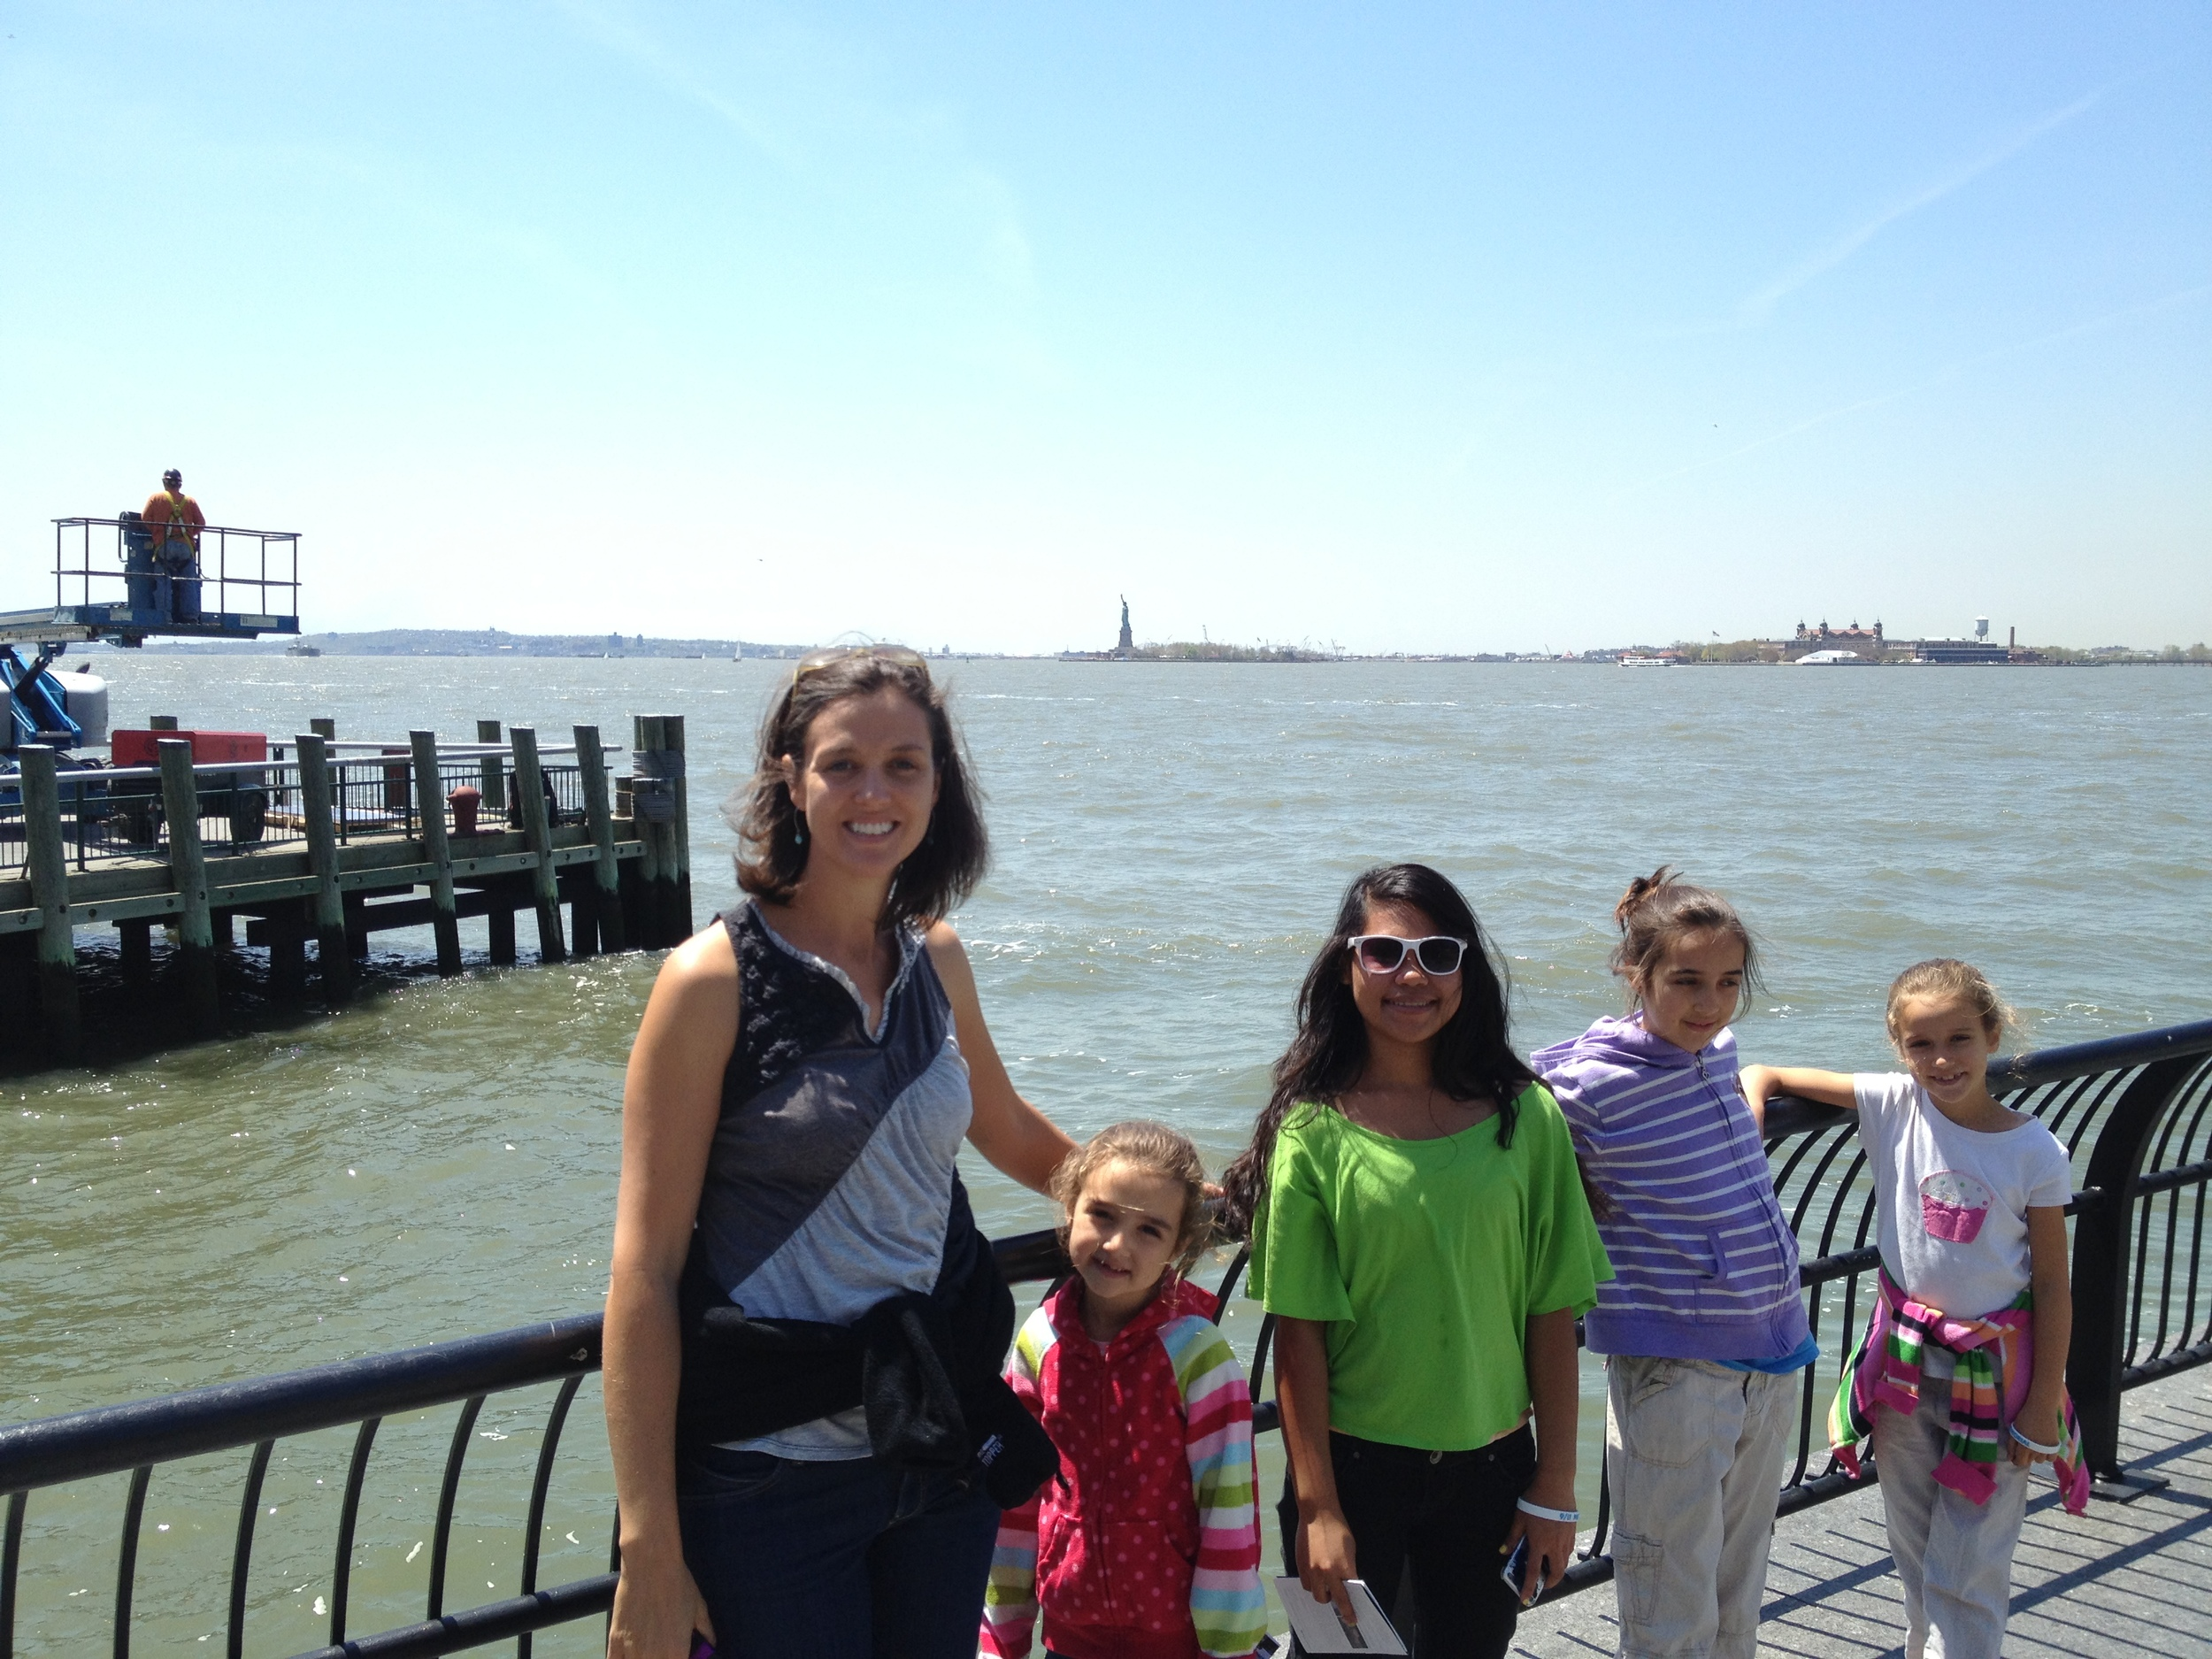 The Statue of Liberty.  The girls thought she was pretty small.